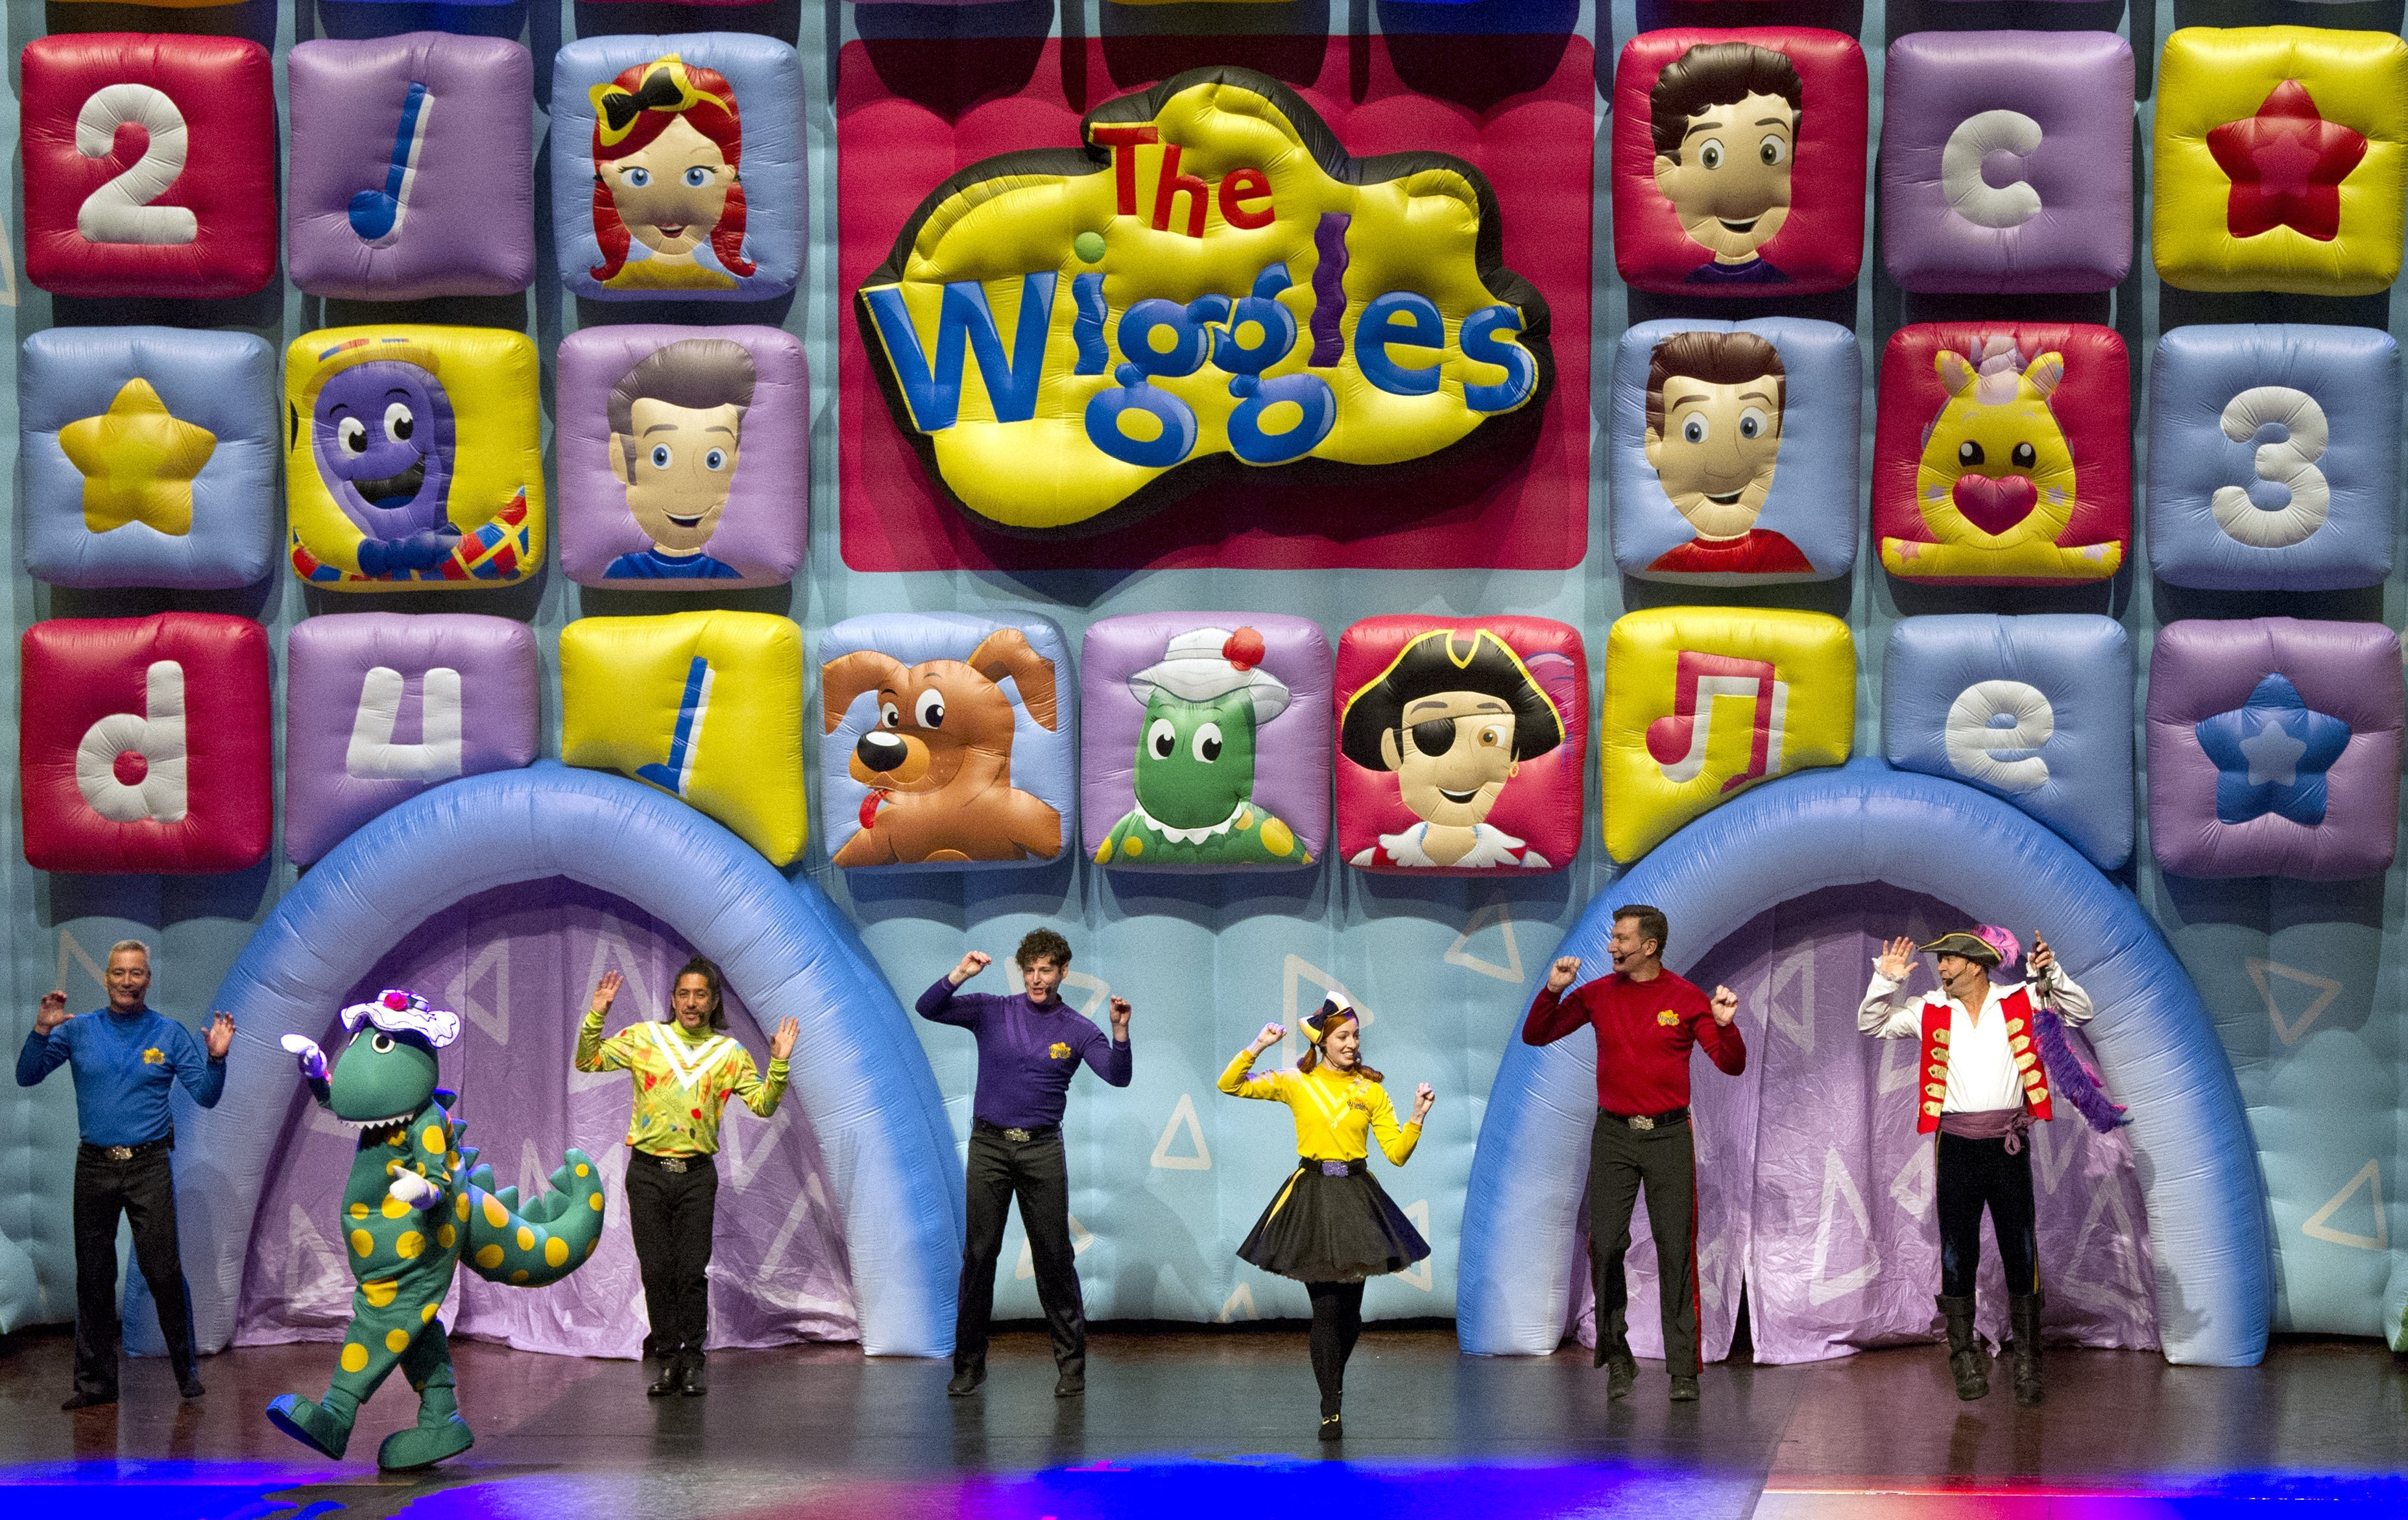 The Wiggles, along with fan favourites Dorothy the Dinosaur and Captain Feathersword, entertain...